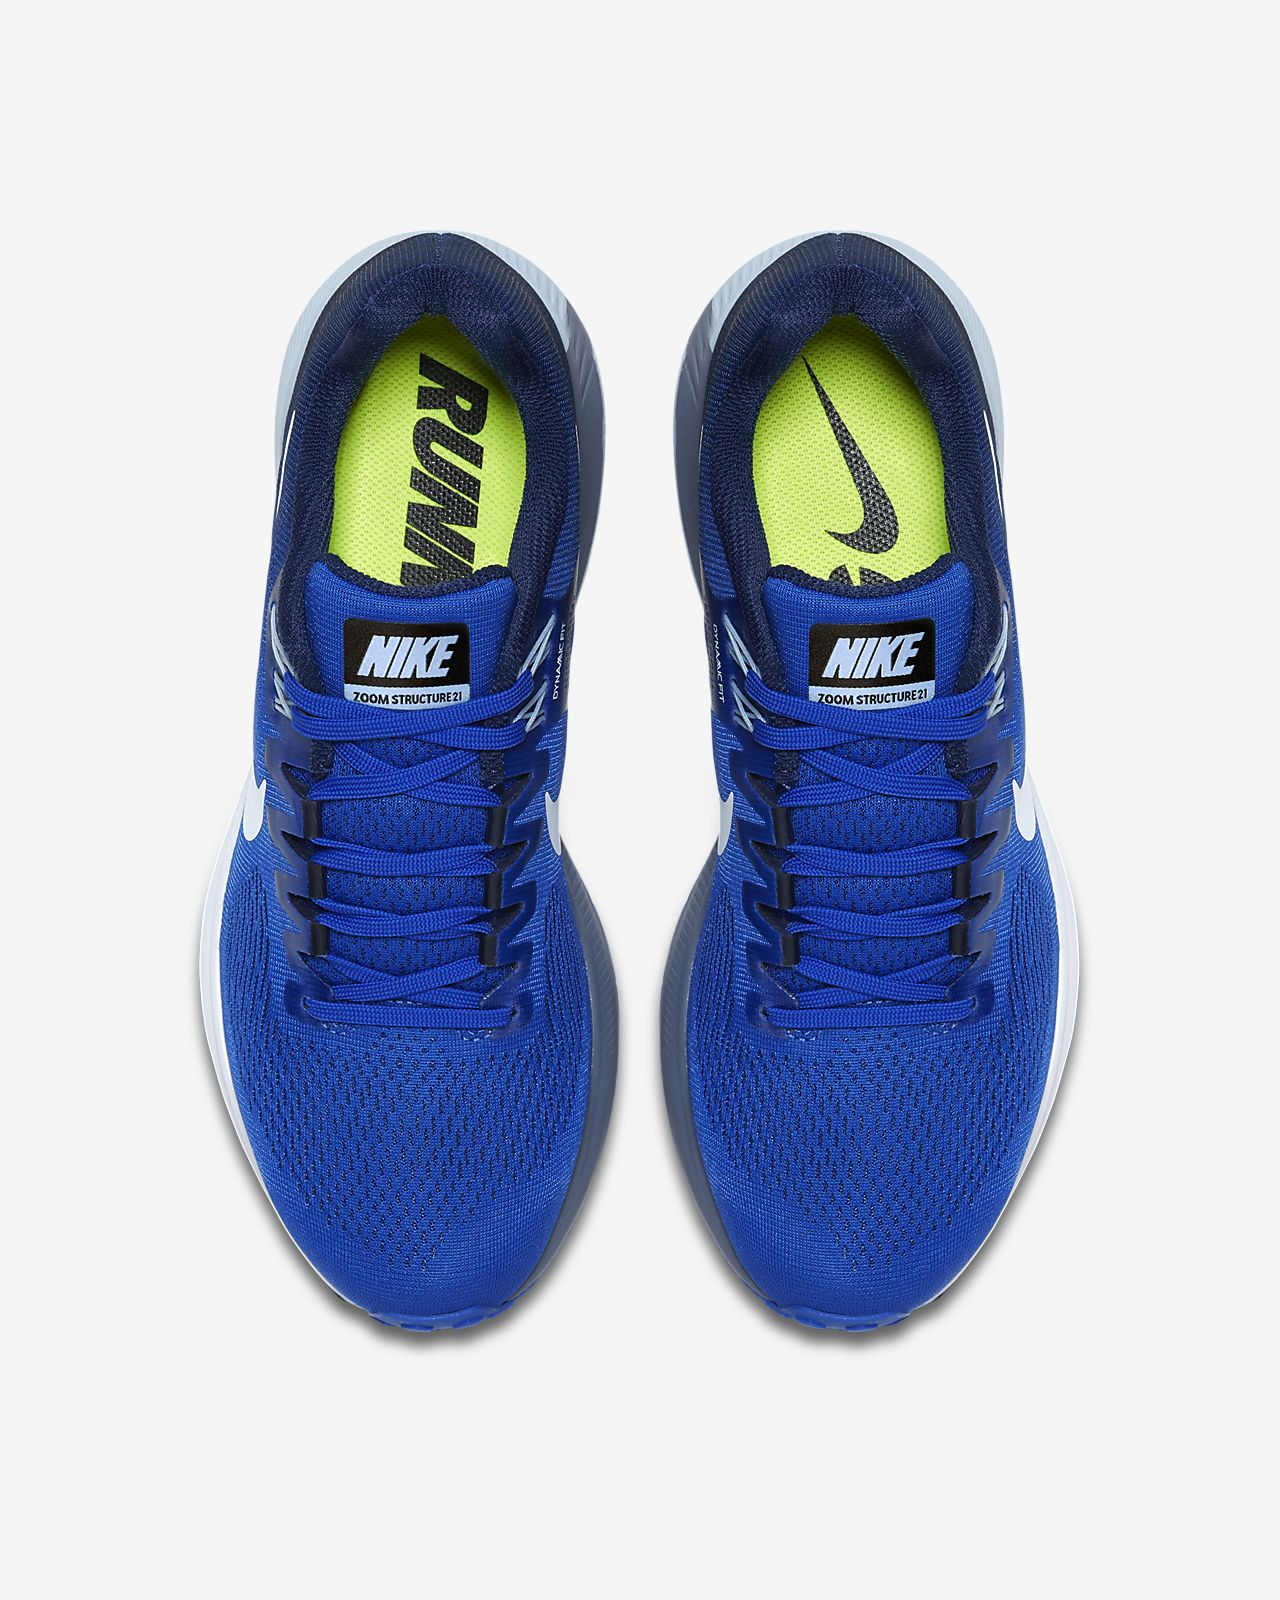 Nike Air Zoom Structure 21 Cool Grey Volt For Sale